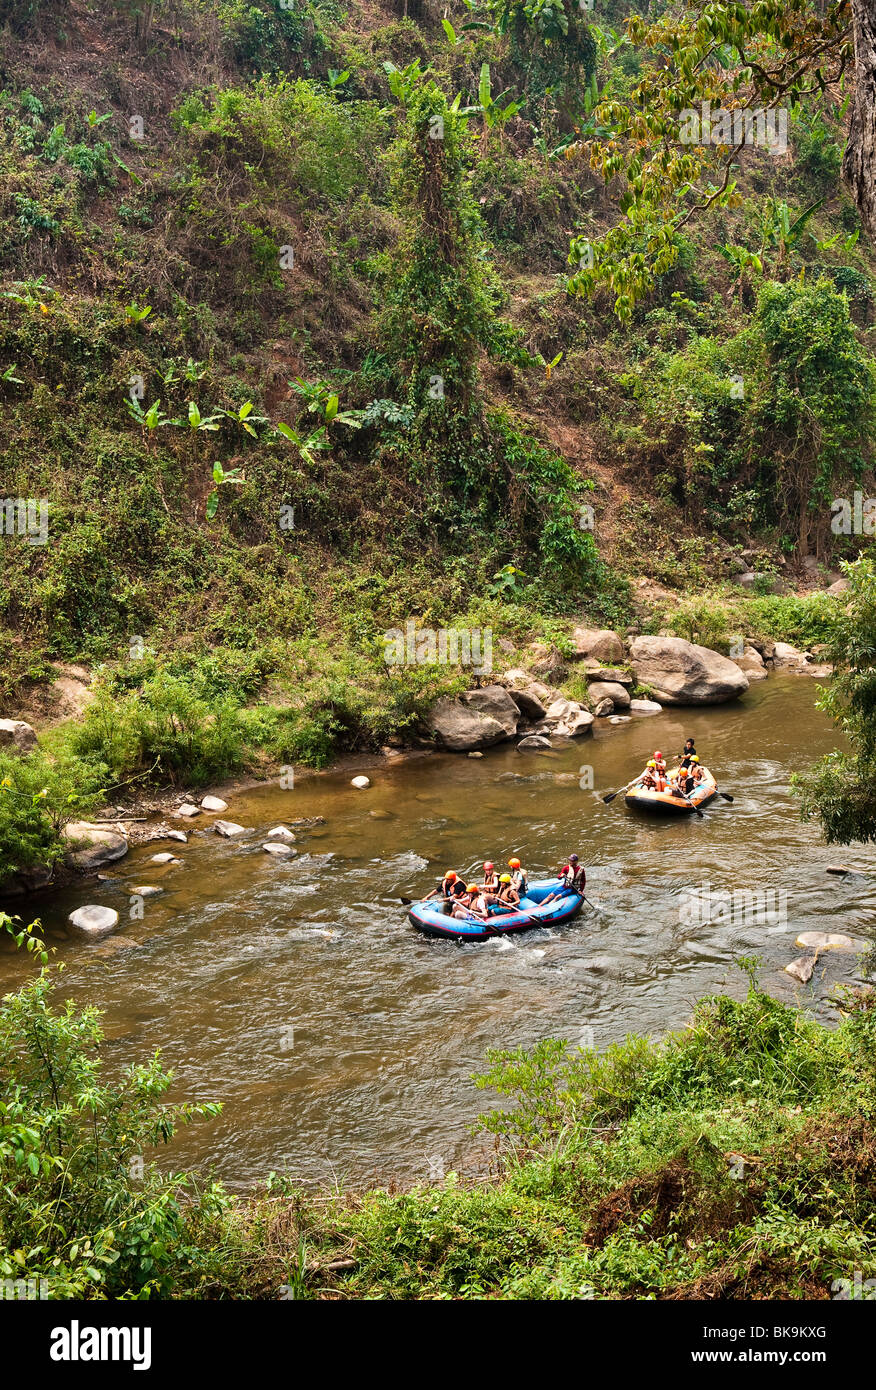 Rafting on the Mae Tang River in rural Chiang Mai Province, Thailand. - Stock Image